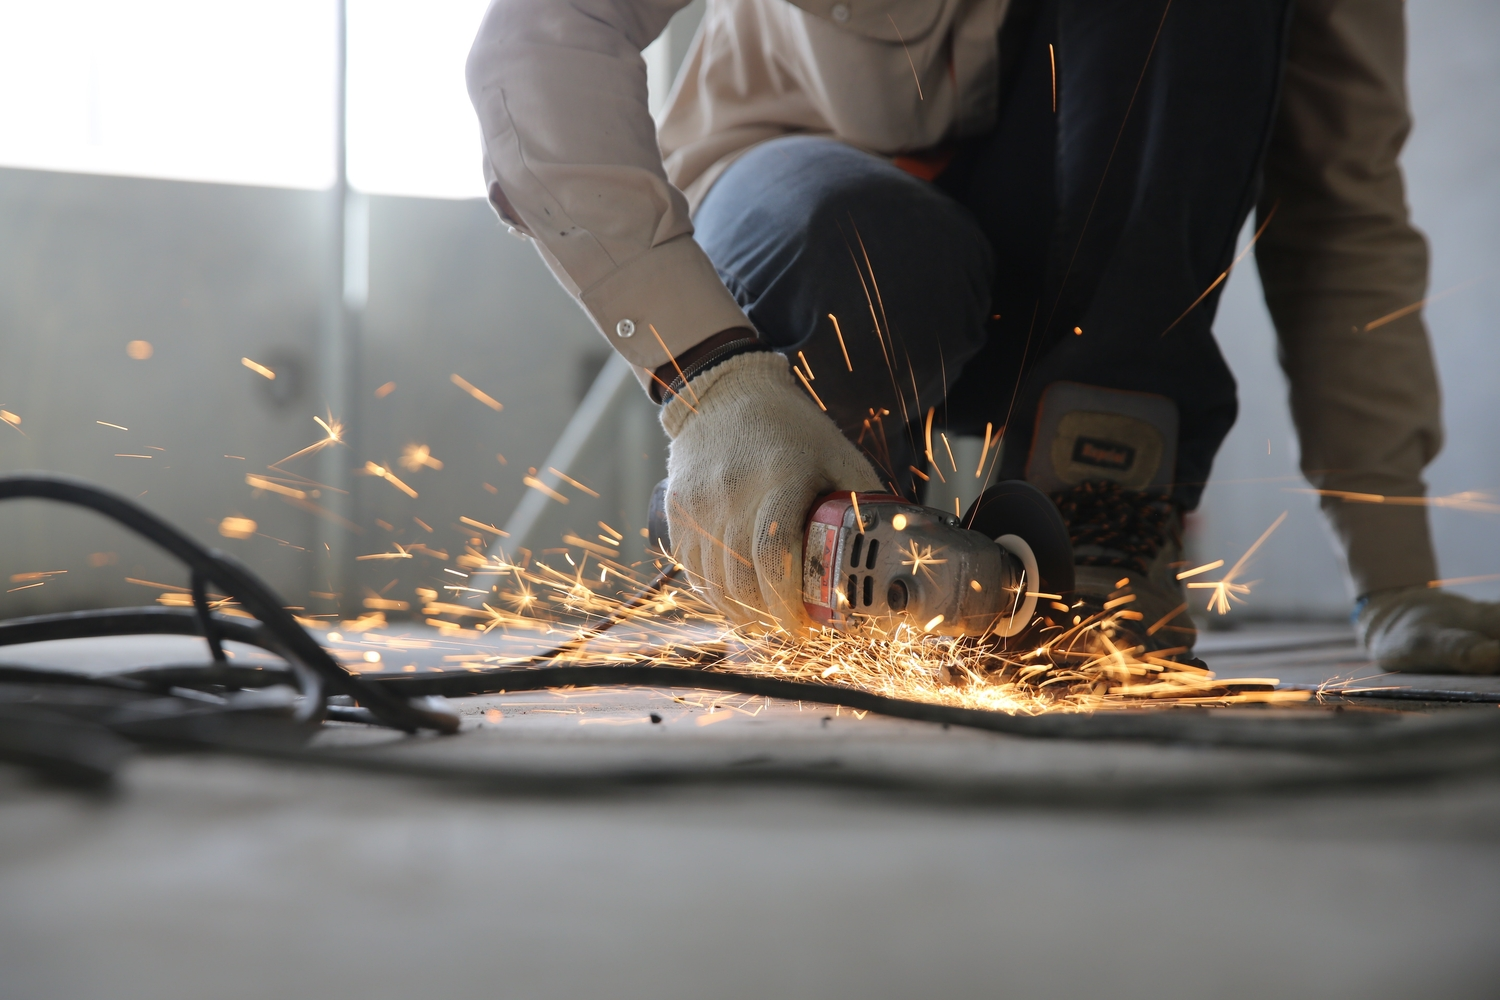 Person holding grinder with sparks